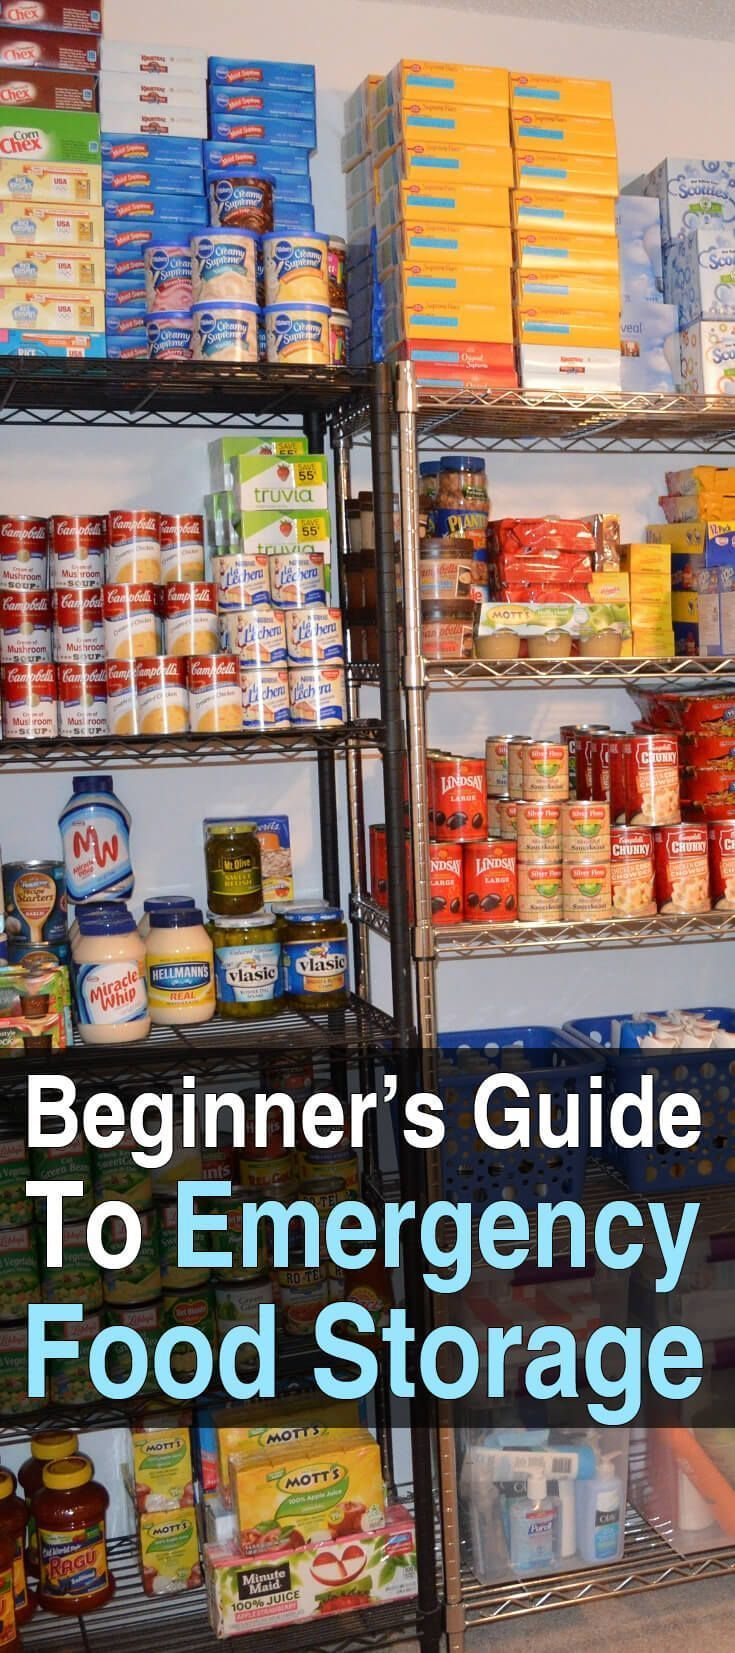 The Beginner's Guide To Emergency Food Storage #hurricanefoodideas